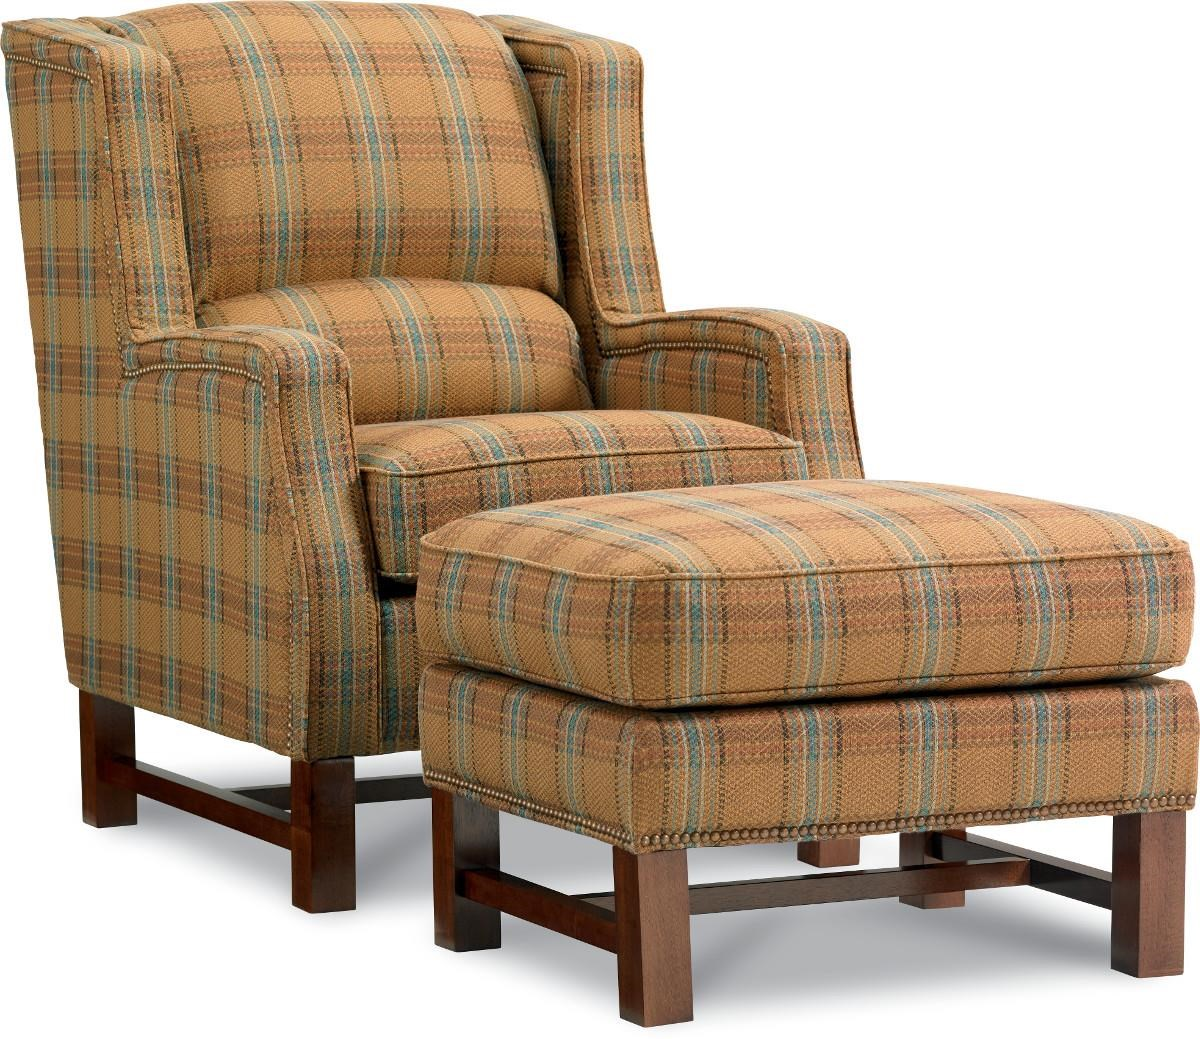 Boys Chair La Z Boy Chairs Cosmopolitan Transitional Wing Chair And Ottoman